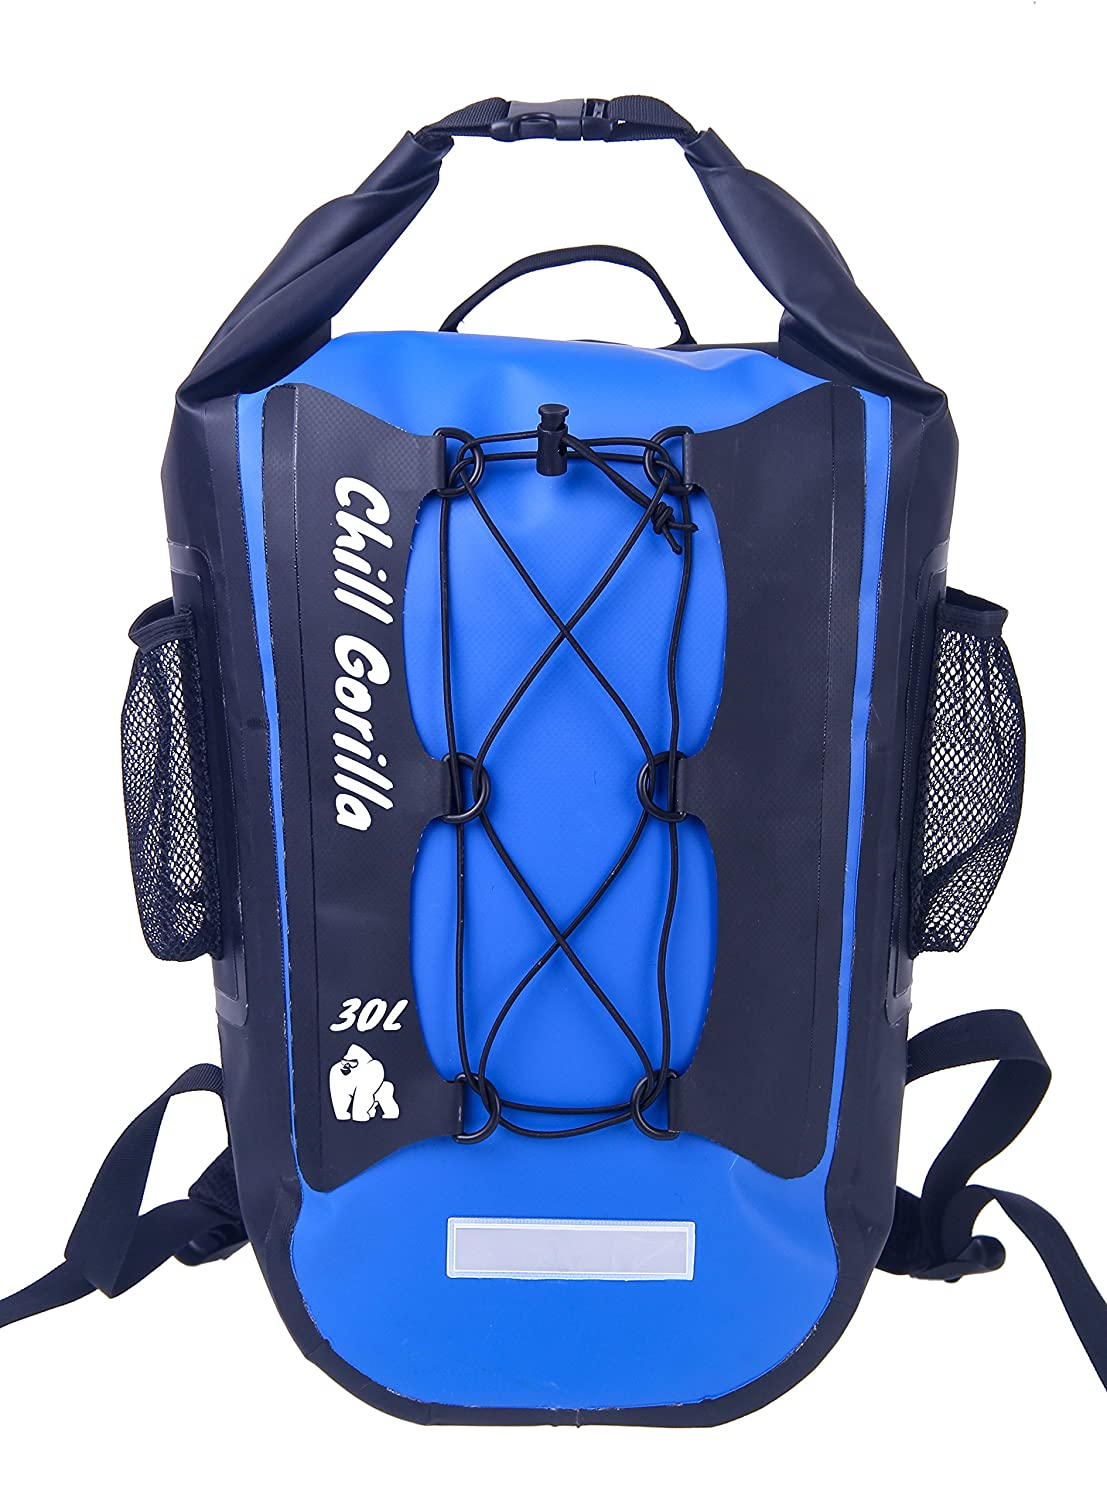 Amazon.com   Chill Gorilla Pro Waterproof Dry Bag Backpack 30L. Super  Strong, Mesh Side Pockets, Padded Shoulder Straps, Waist Straps    Reflective Night ... 407f64c35b